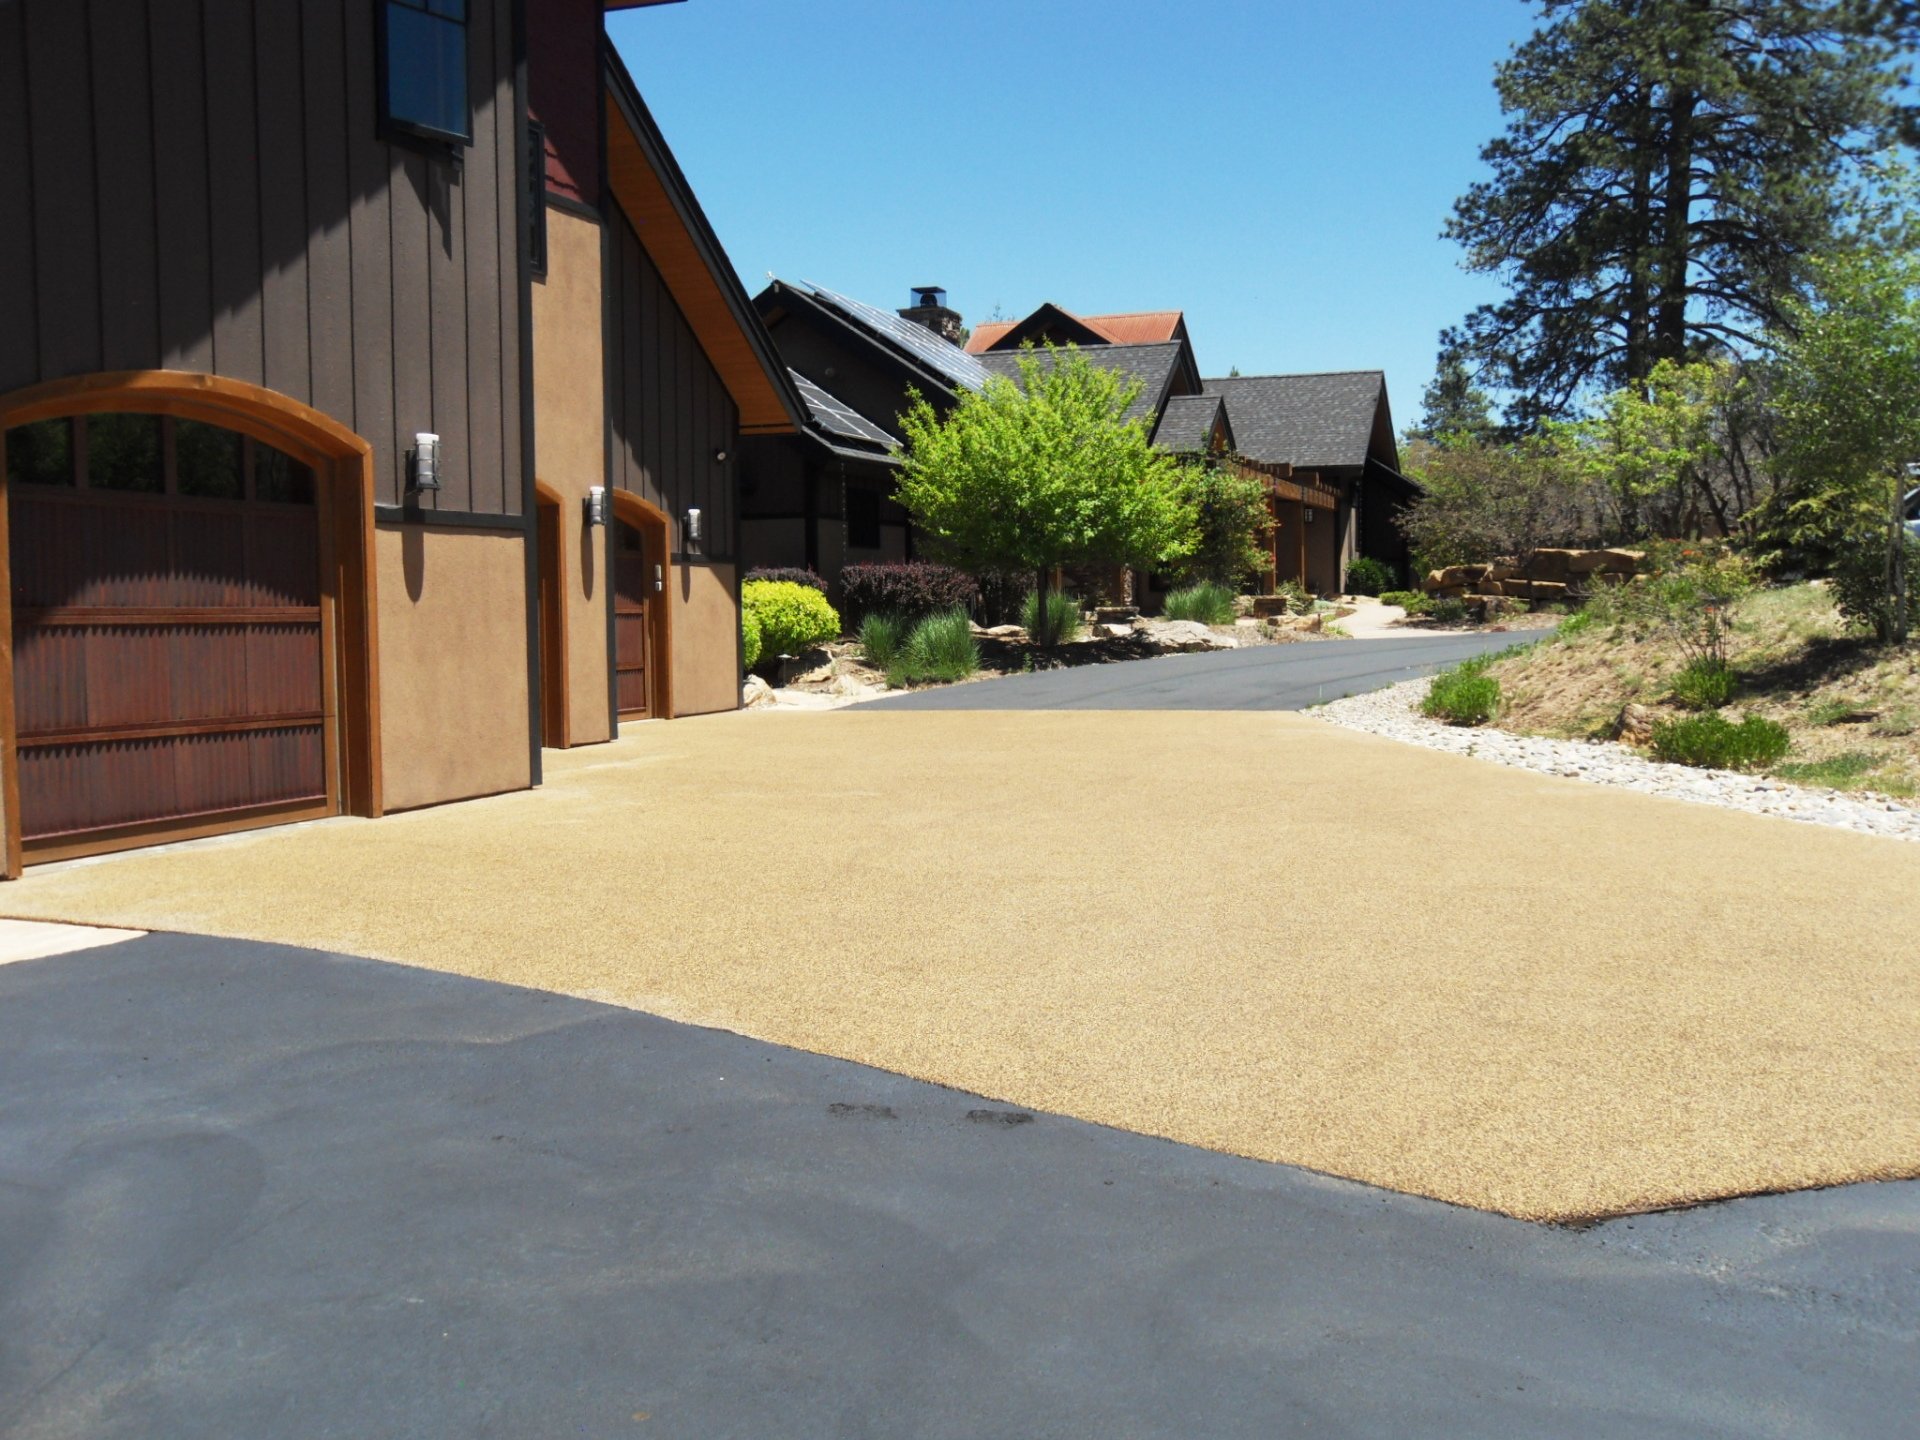 Rubaroc Dealer